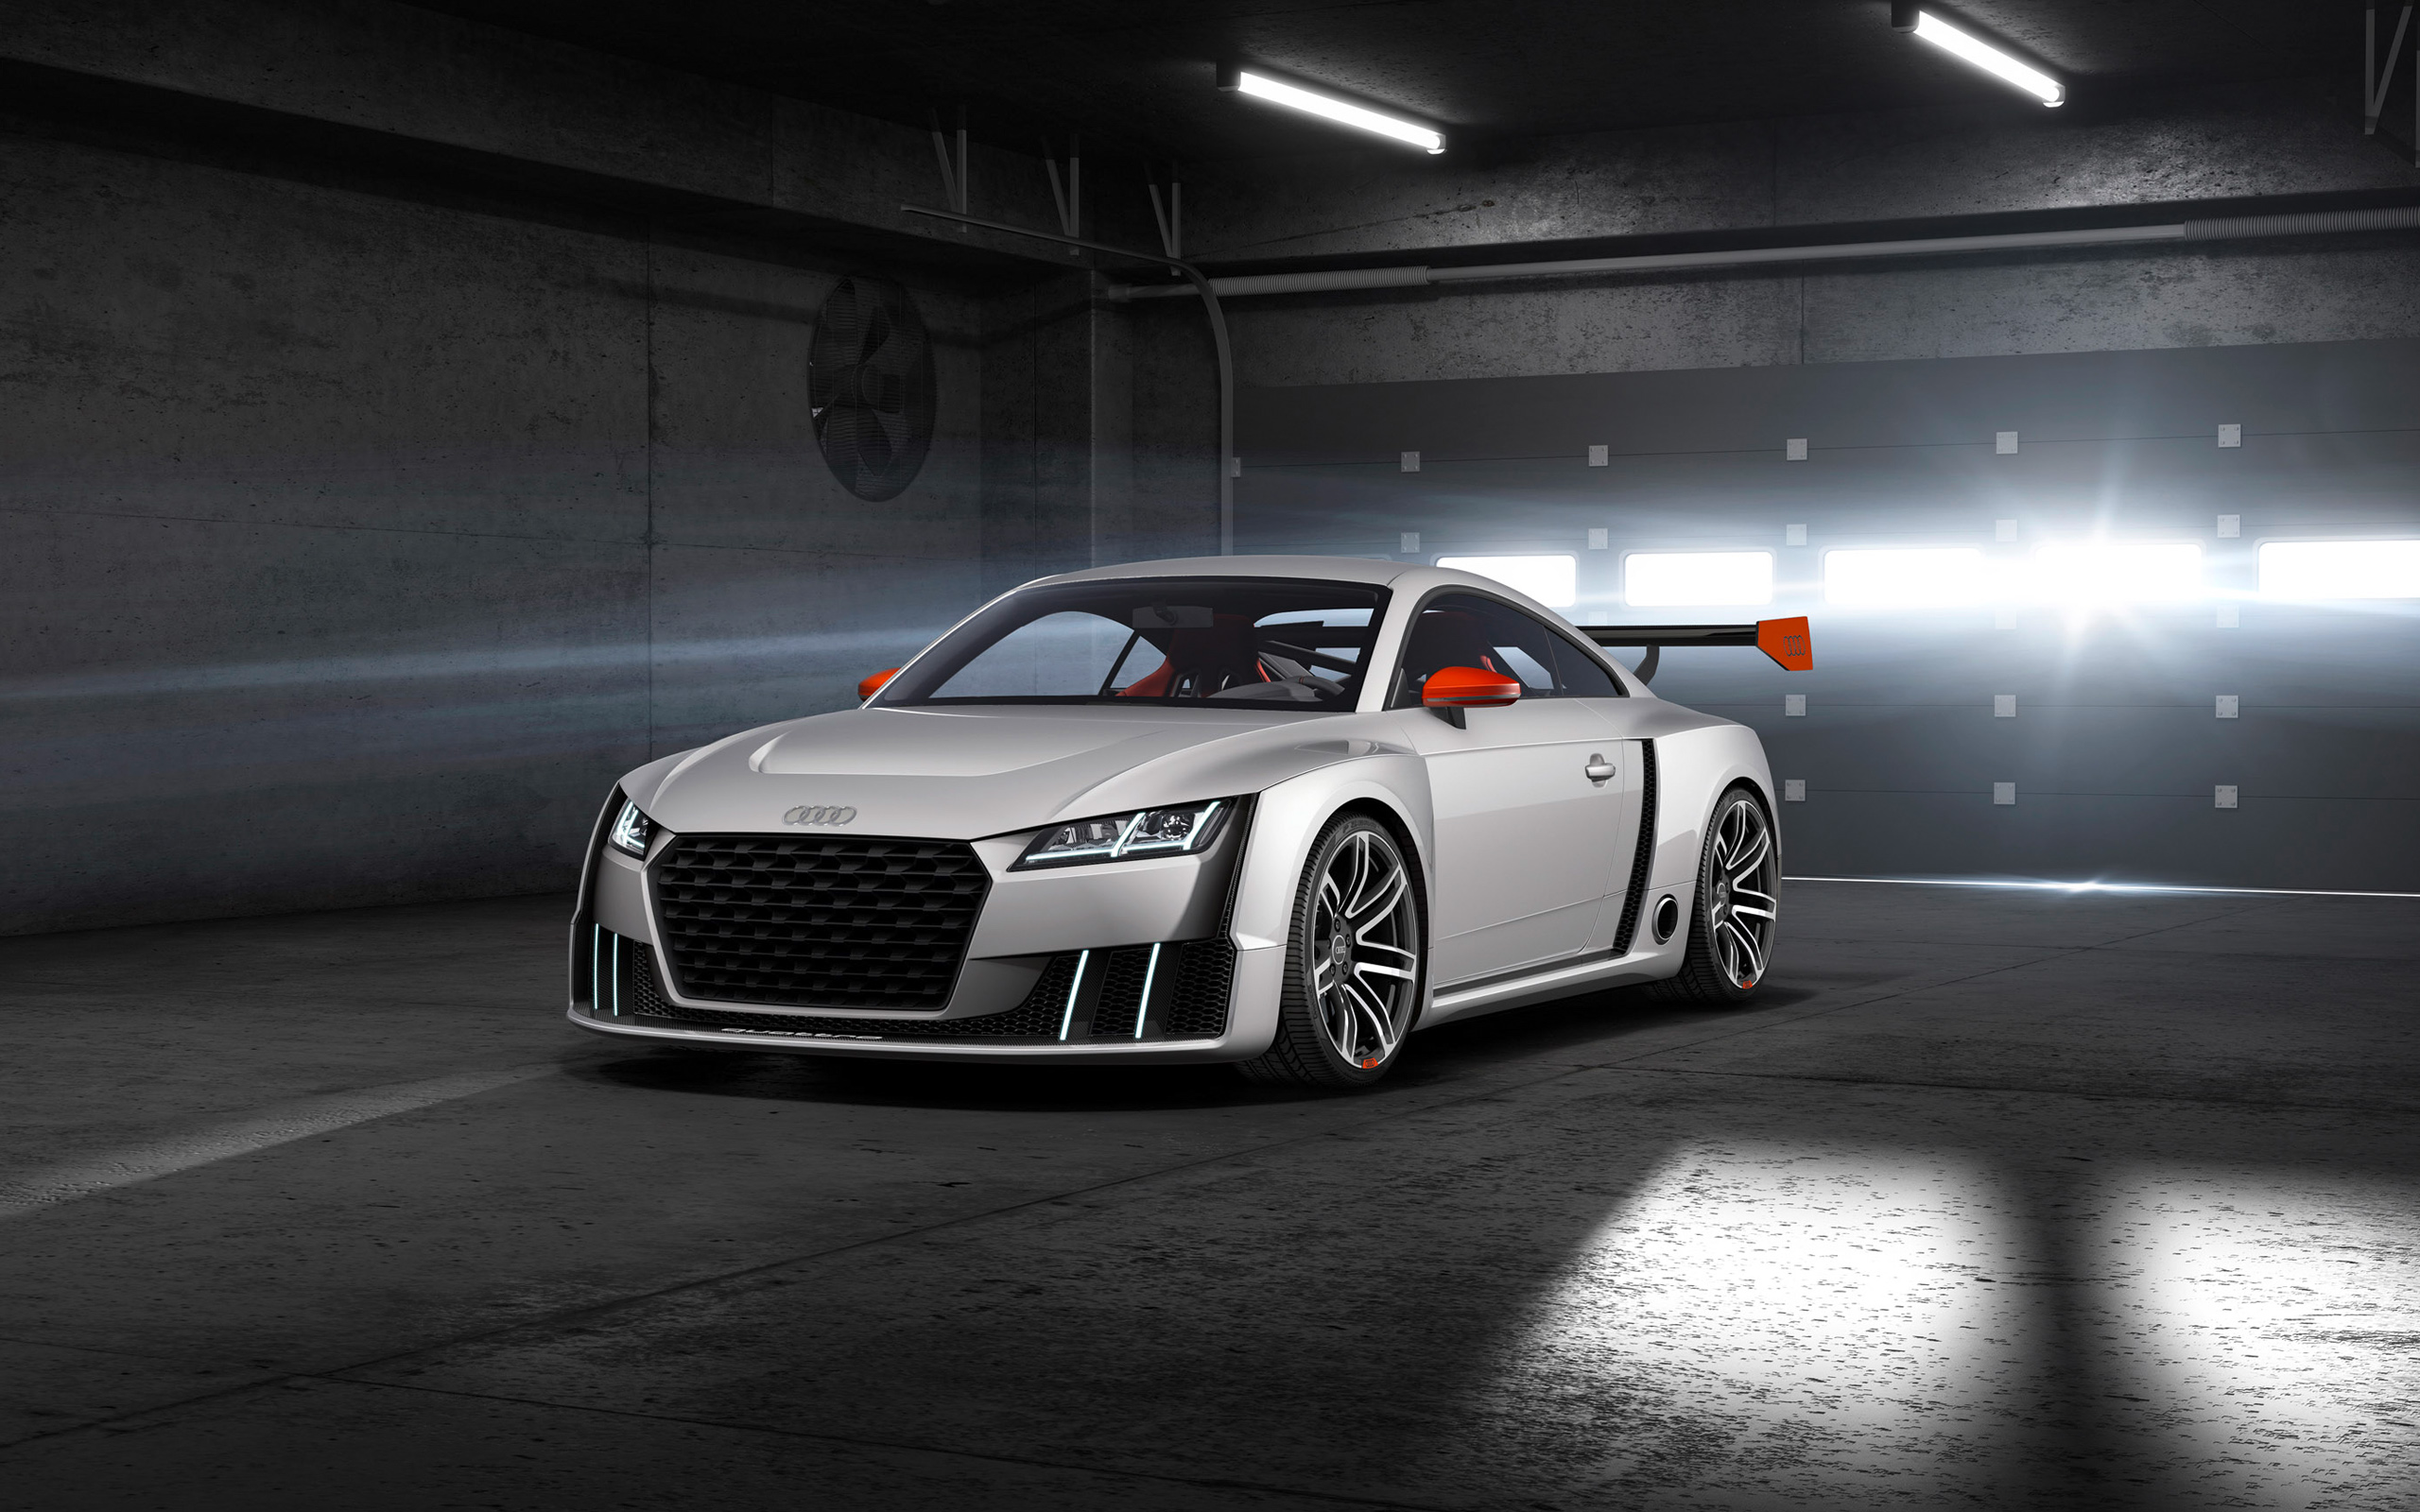 2015 Audi TT Clubsport Turbo Concept Wallpaper  HD Car Wallpapers